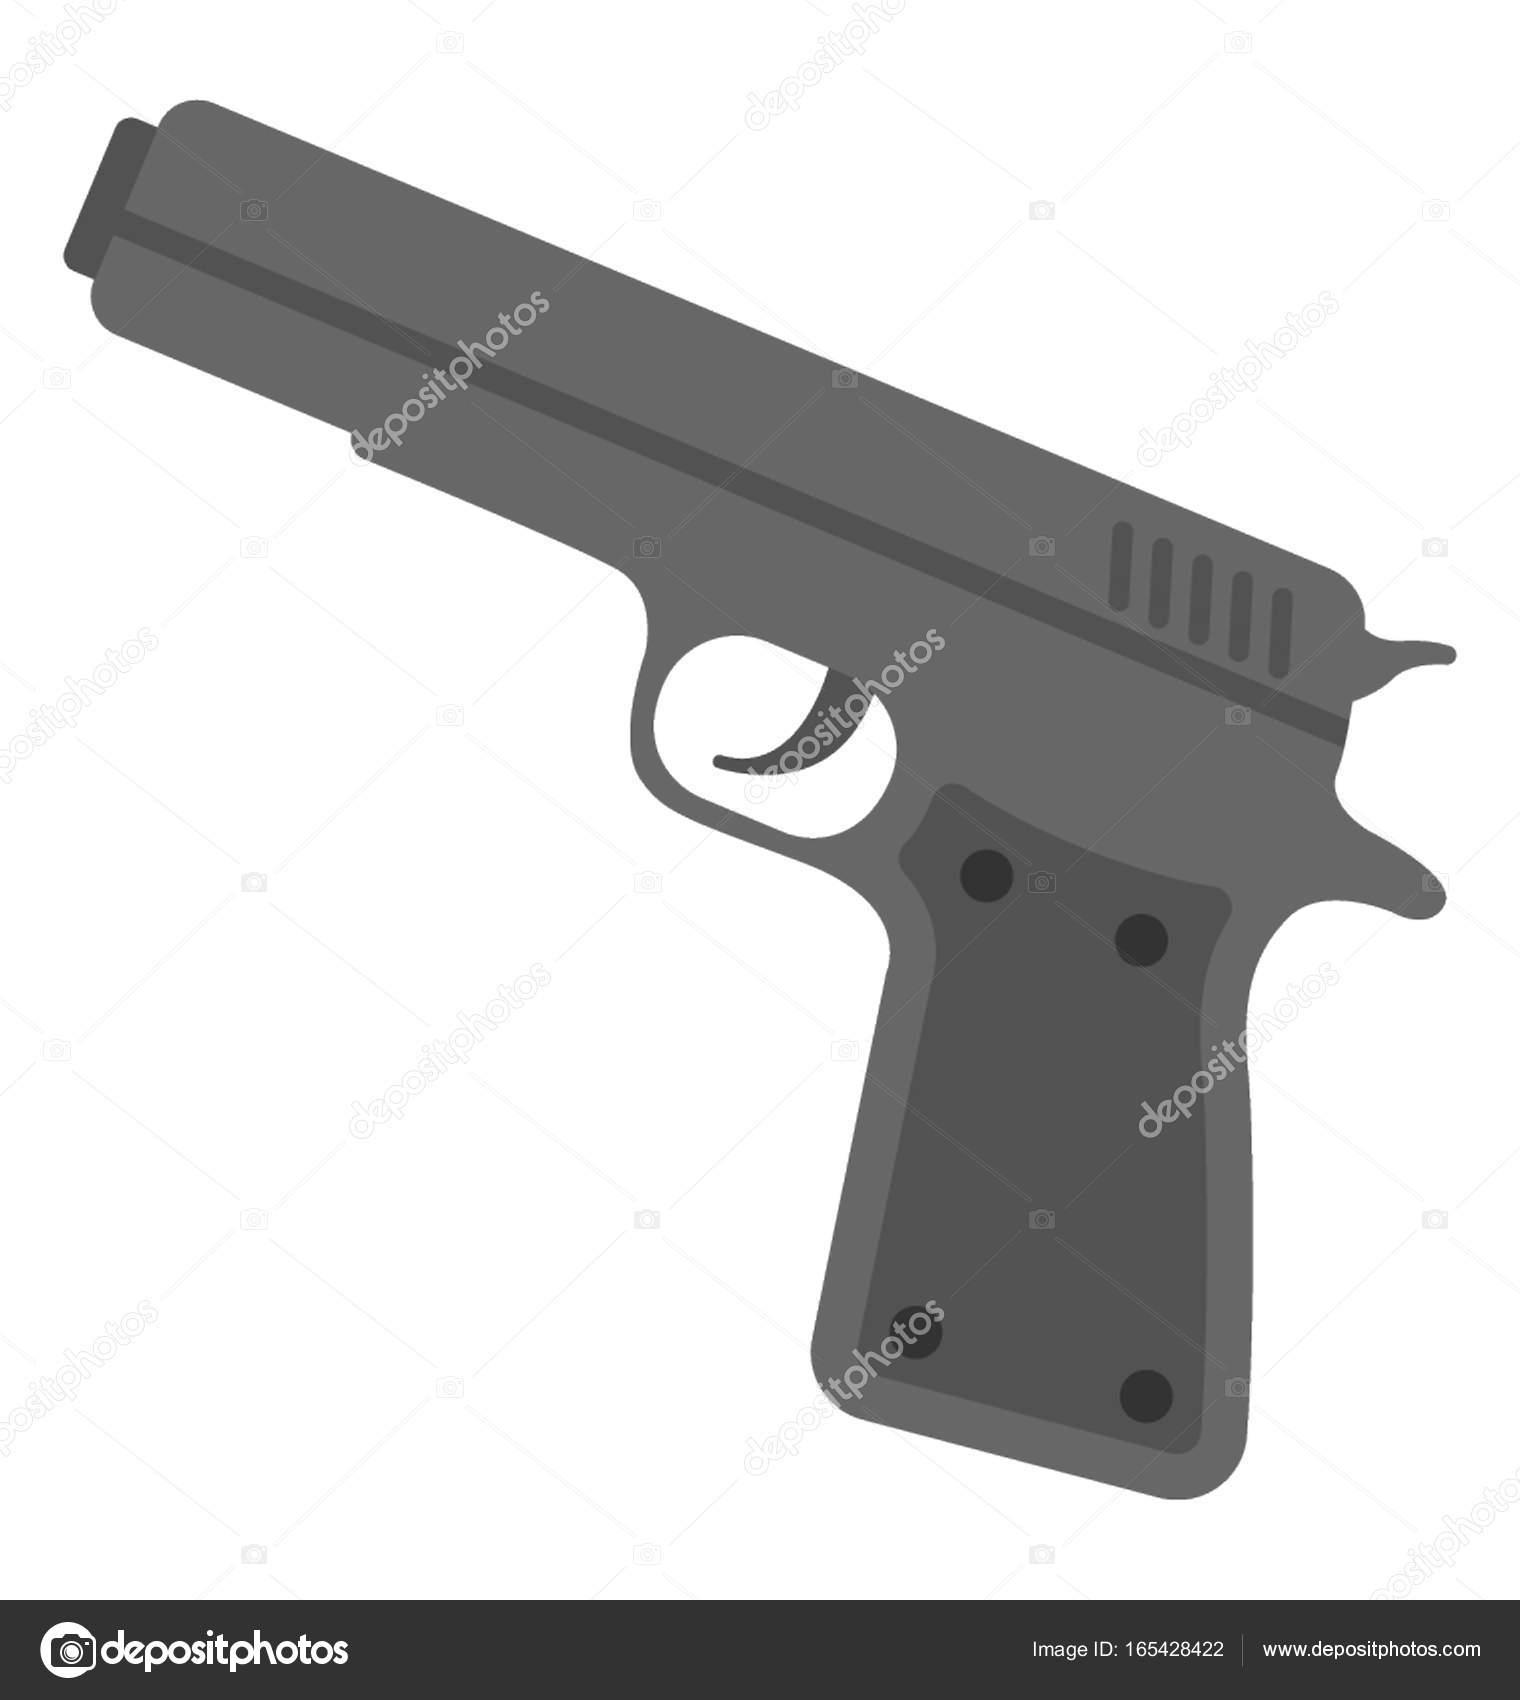 pistol vector icon stock vector c creativestall 165428422 https depositphotos com 165428422 stock illustration pistol vector icon html